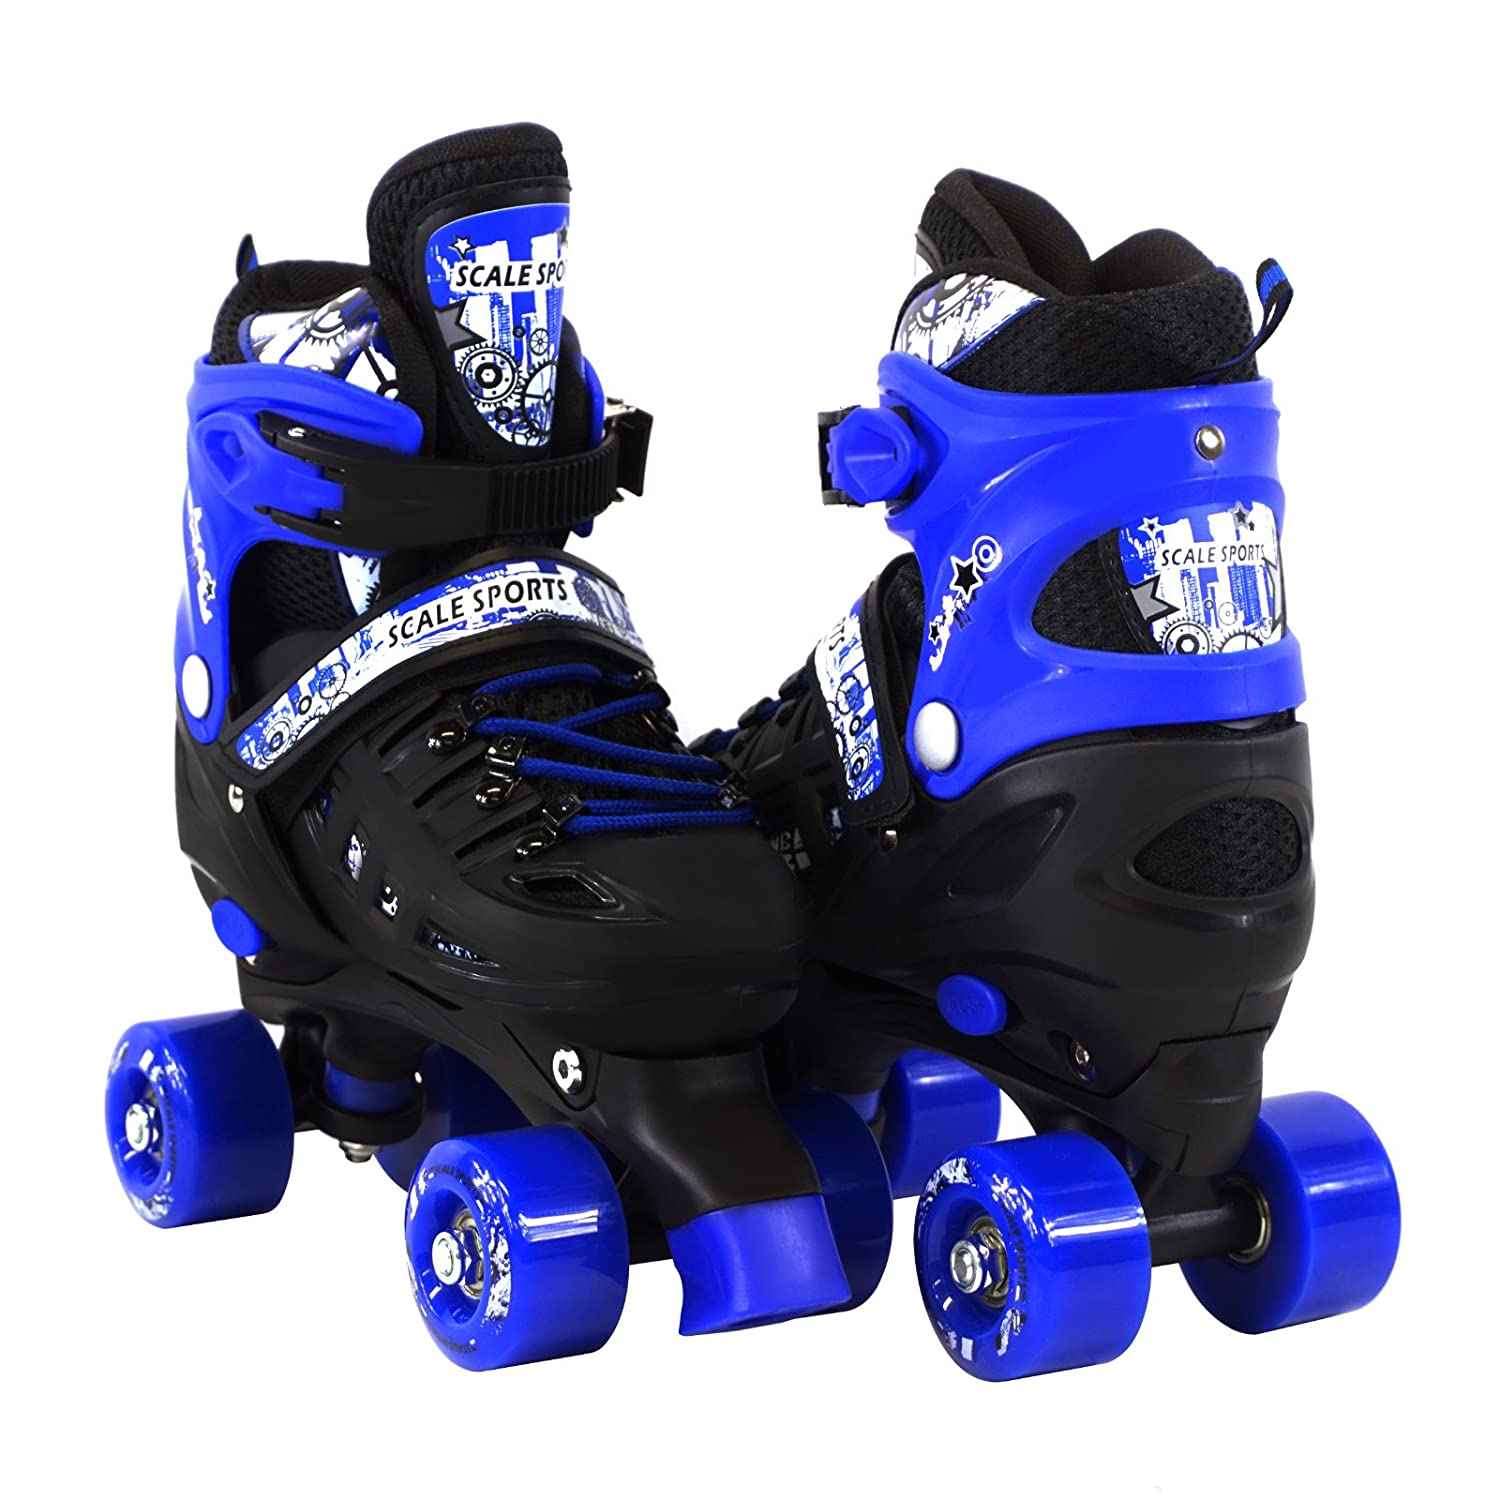 Scale Sports Adjustable Quad Roller Skates for Kids Size 13.5 Junior to 9 Adult